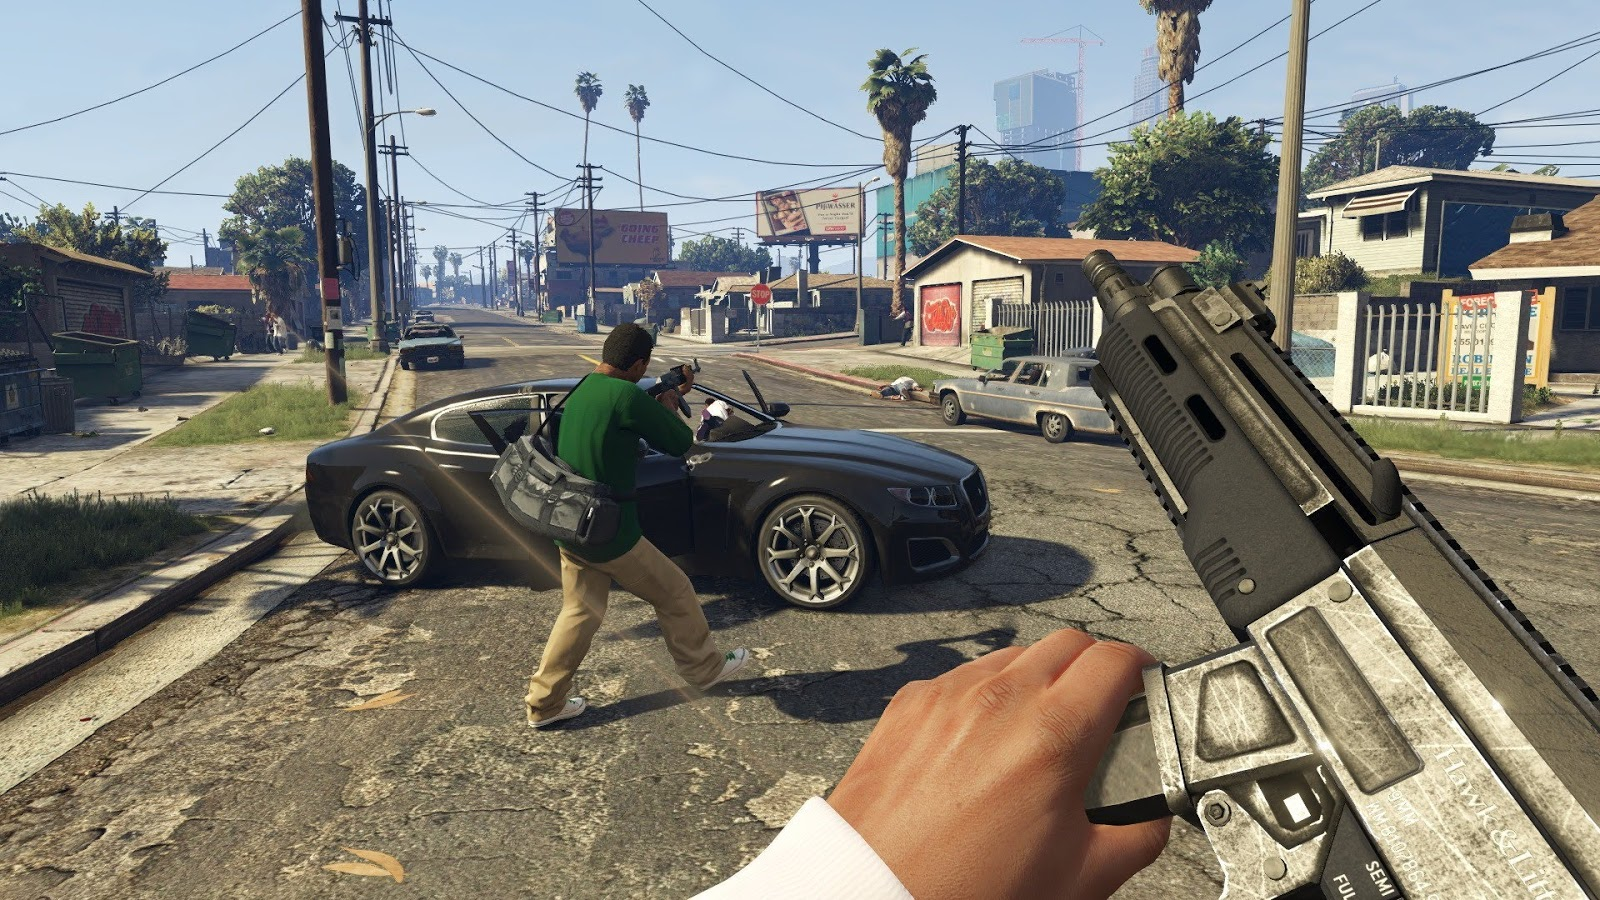 Huge GTA 5 Online Money Glitch That made People Billionaires PATCHED